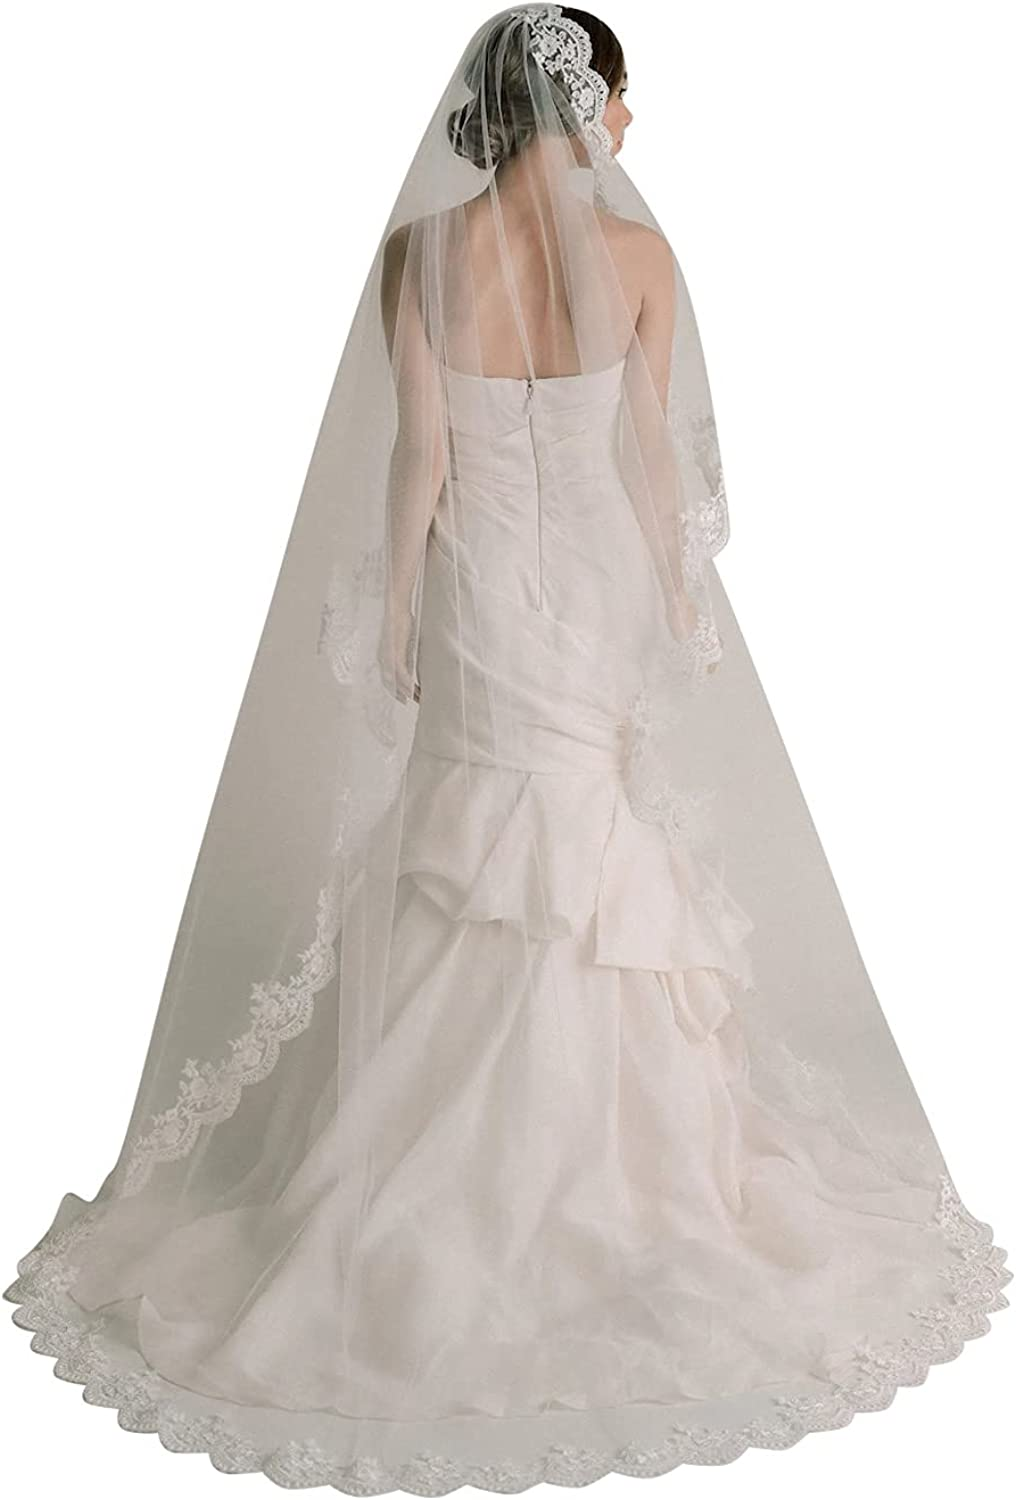 Cathedral Wedding Veils for Brides 1 Tier Elegant Lace Edge Chapel with Comb